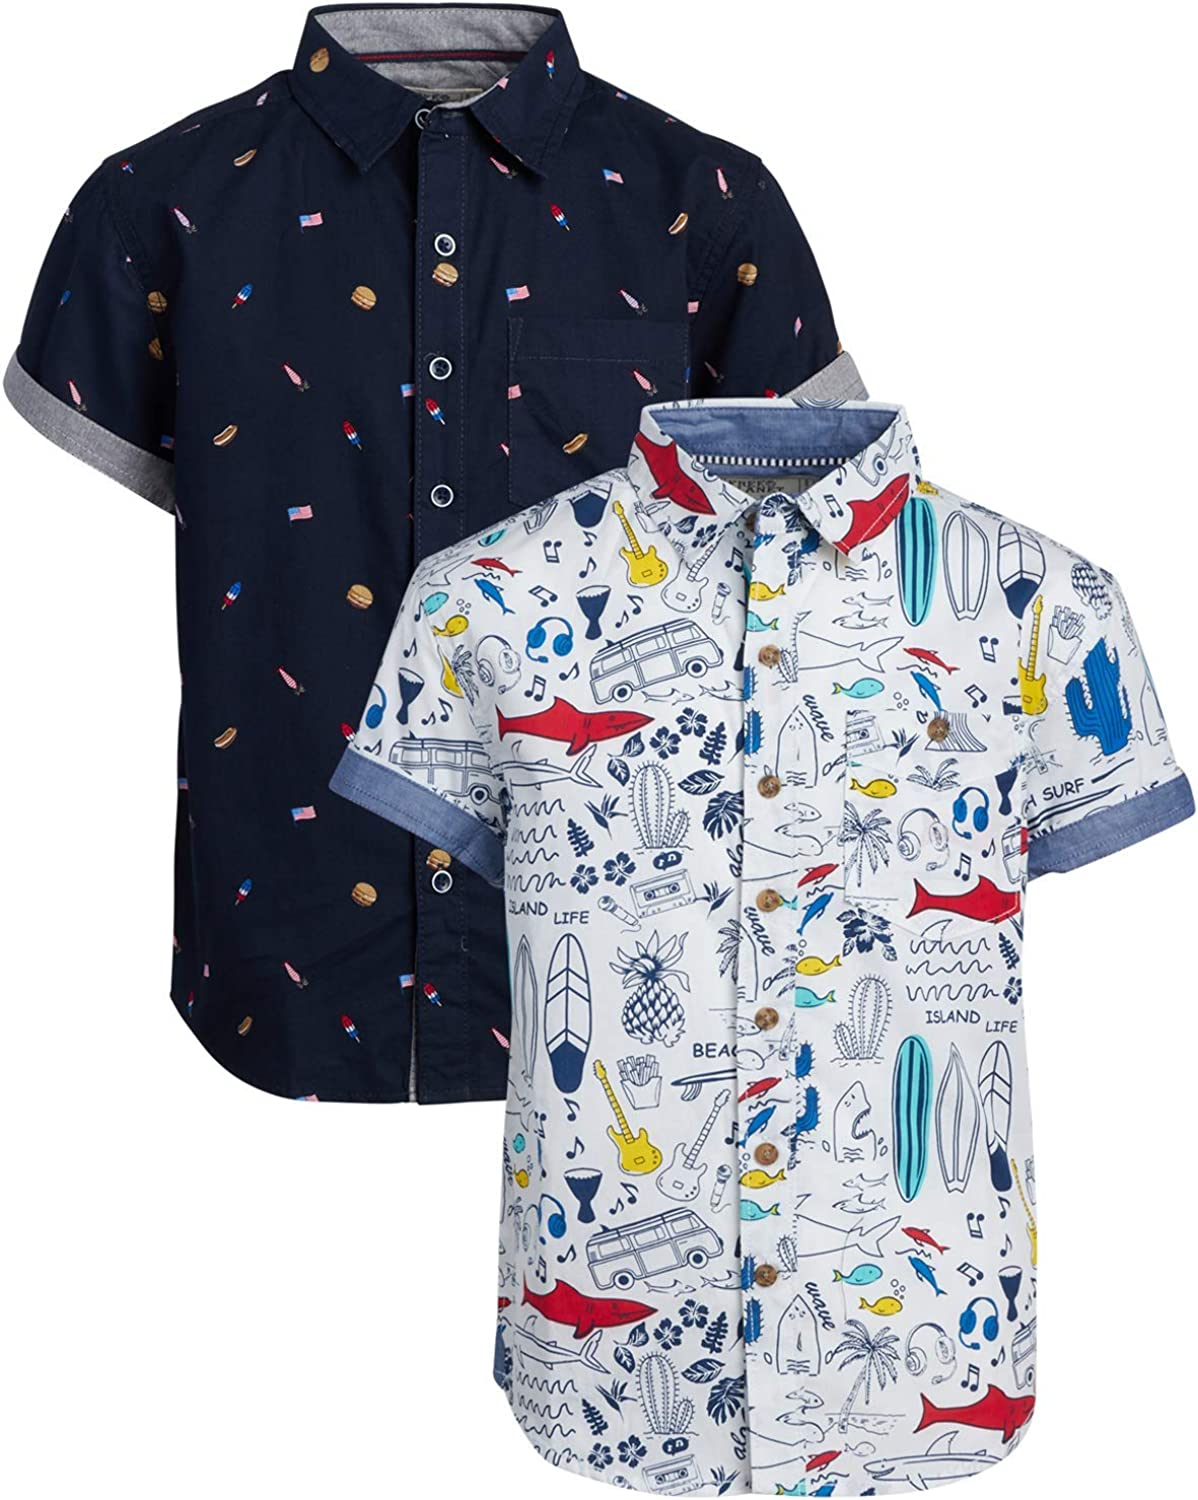 Free Planet Boys' Shirt - Casual Short Sleeve Button Down Collared Shirt (2 Pack)